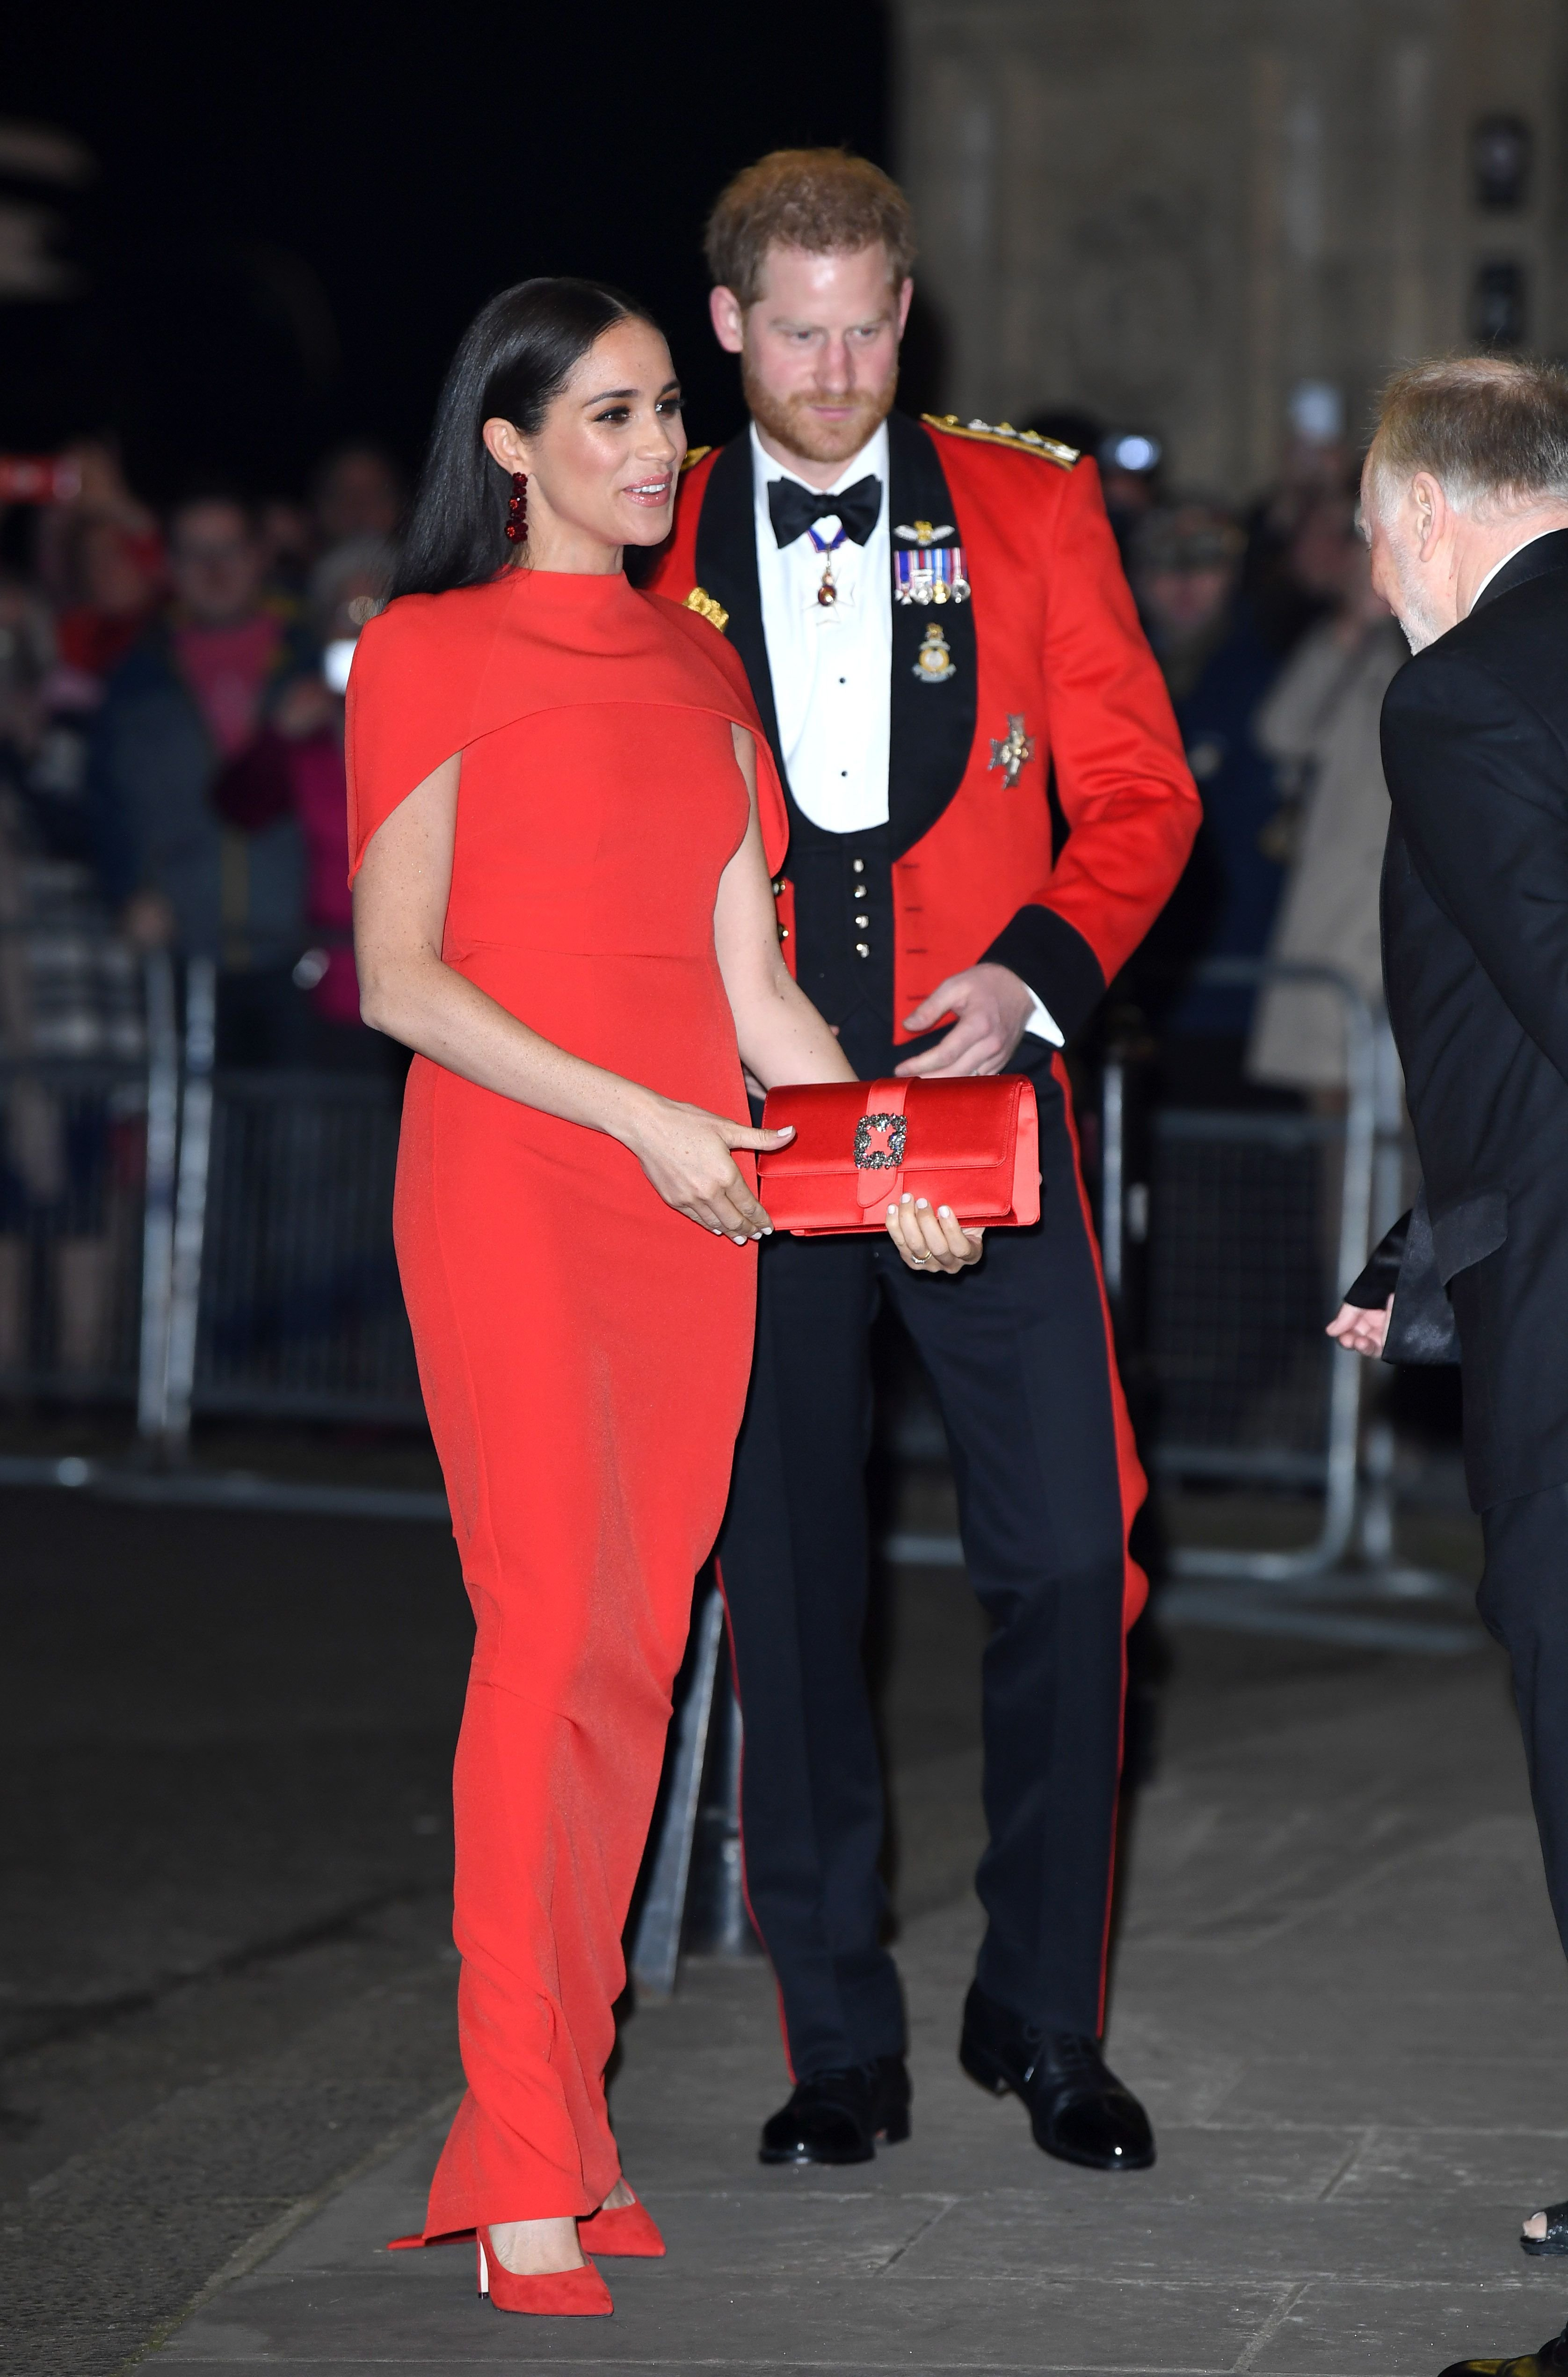 Duchess Meghan and Prince Harry at the Mountbatten Festival of Music on March 07, 2020, in London, England | Photo: Getty Images